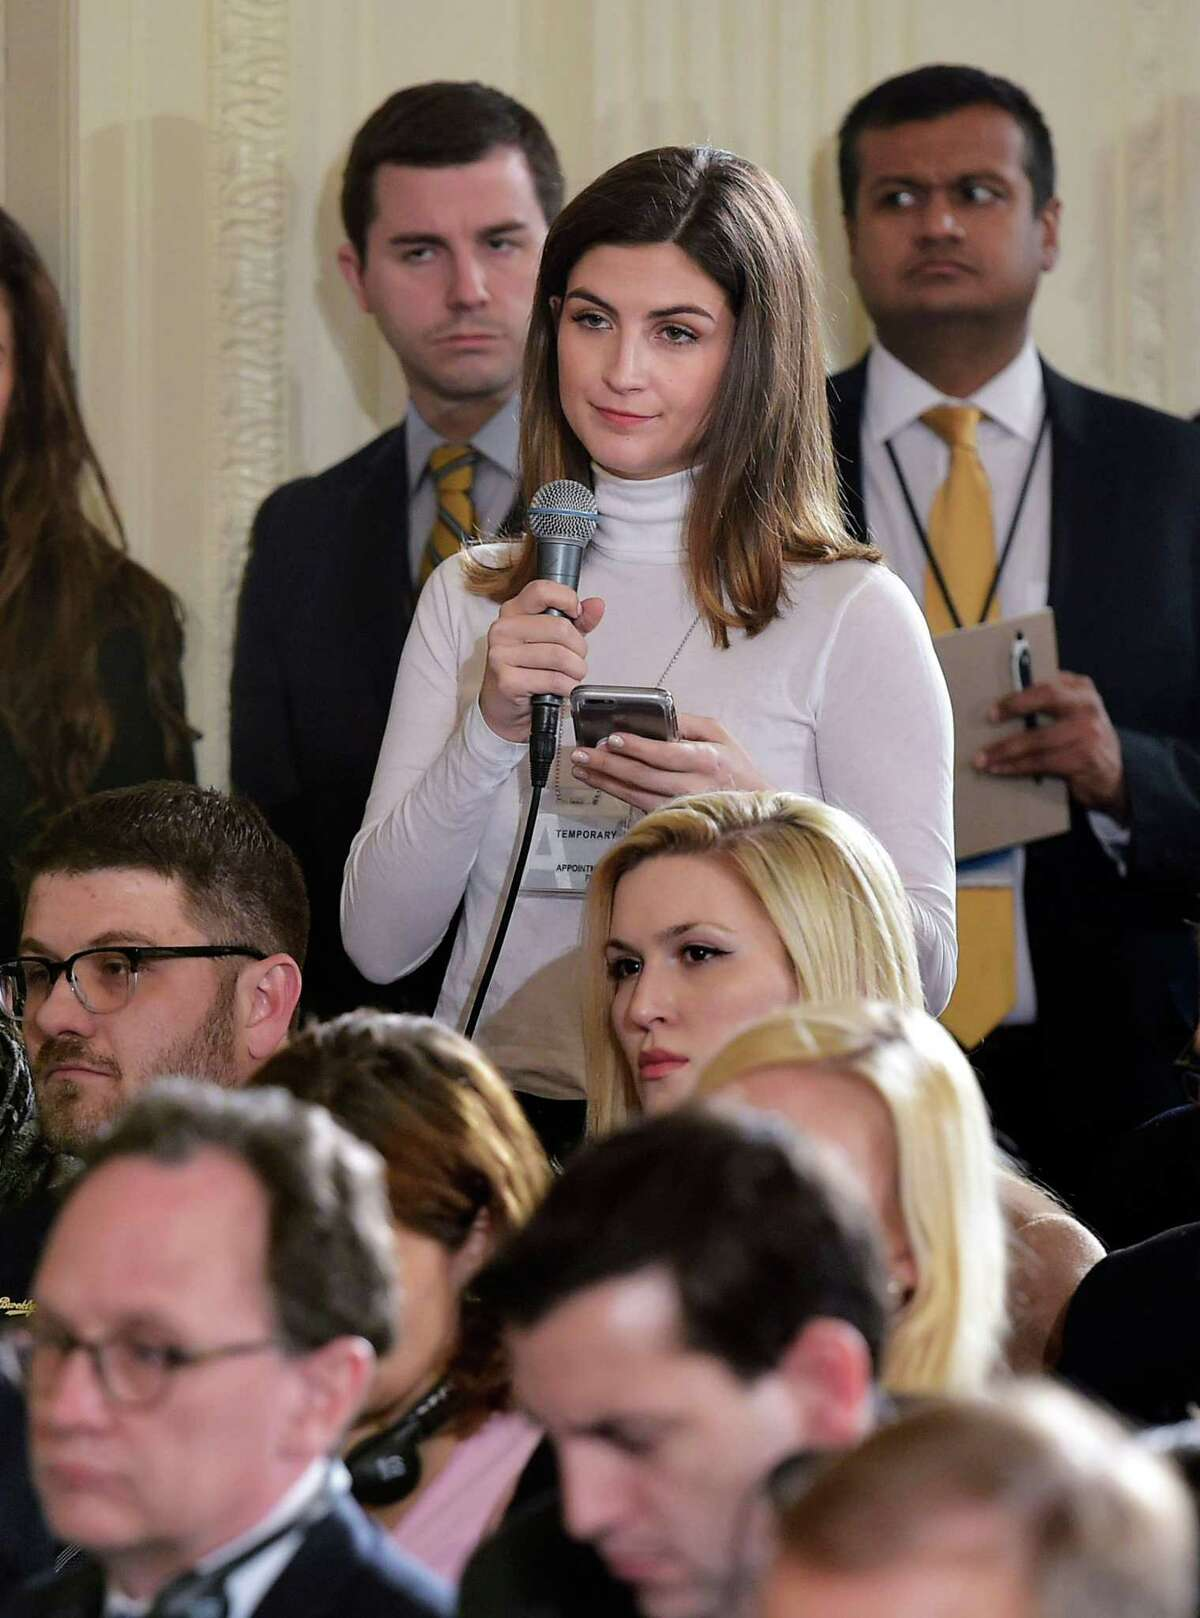 CNN correspondent Kaitlan Collins says she was told the White House Press Office that she could not attend an event with President Trump and European Commission chief Jean-Claude Juncker because she had asked